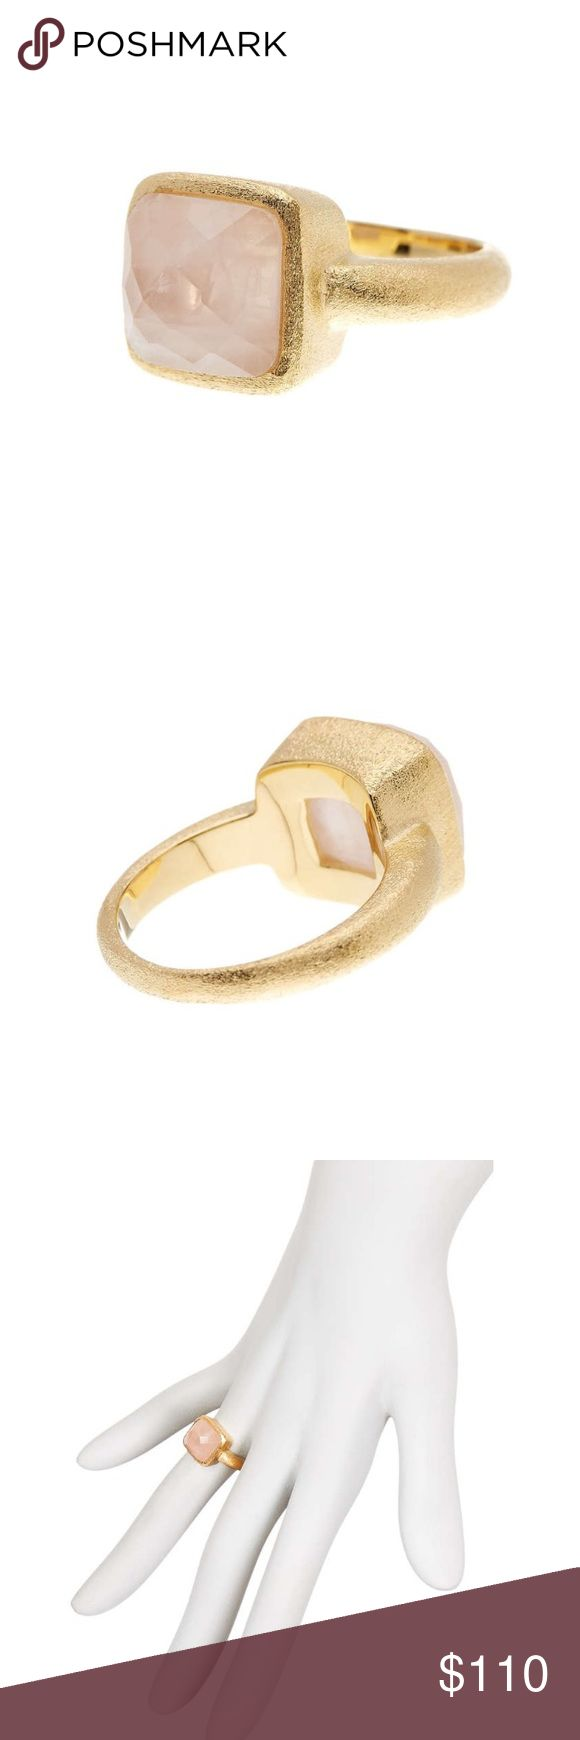 """rivka friedman // 18k rose quartz ring NWT Rivka Friedman 18k gold plated ring with satin finish. Faceted rose quartz stone measures 0.5"""" by 0.5"""". Perfect for stacking or worn alone. The ideal neutral ring every fashionista needs in her wardrobe! rivka friedman Jewelry Rings"""